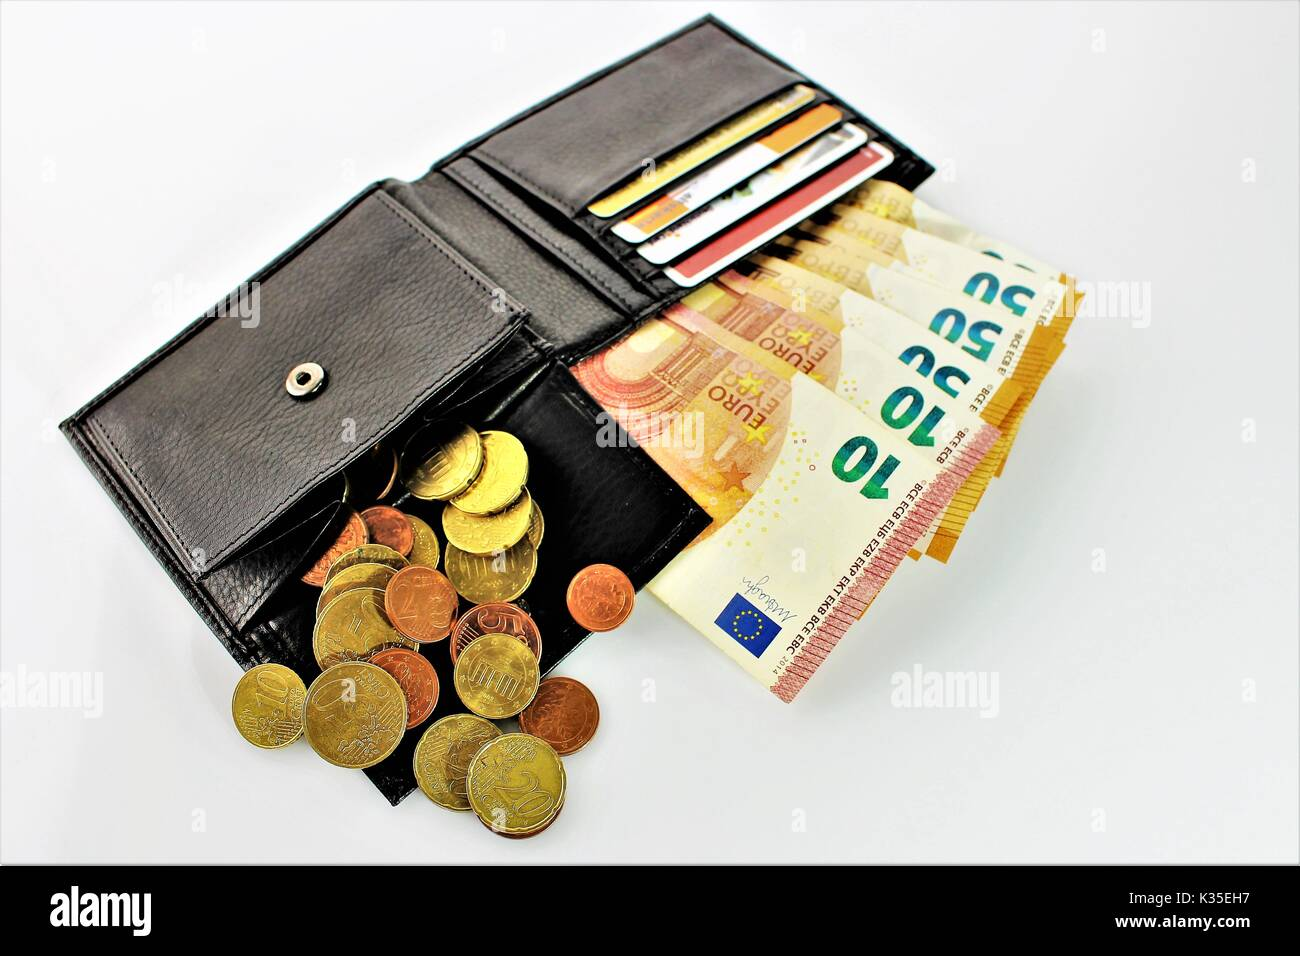 An image of a purse with money - Stock Image